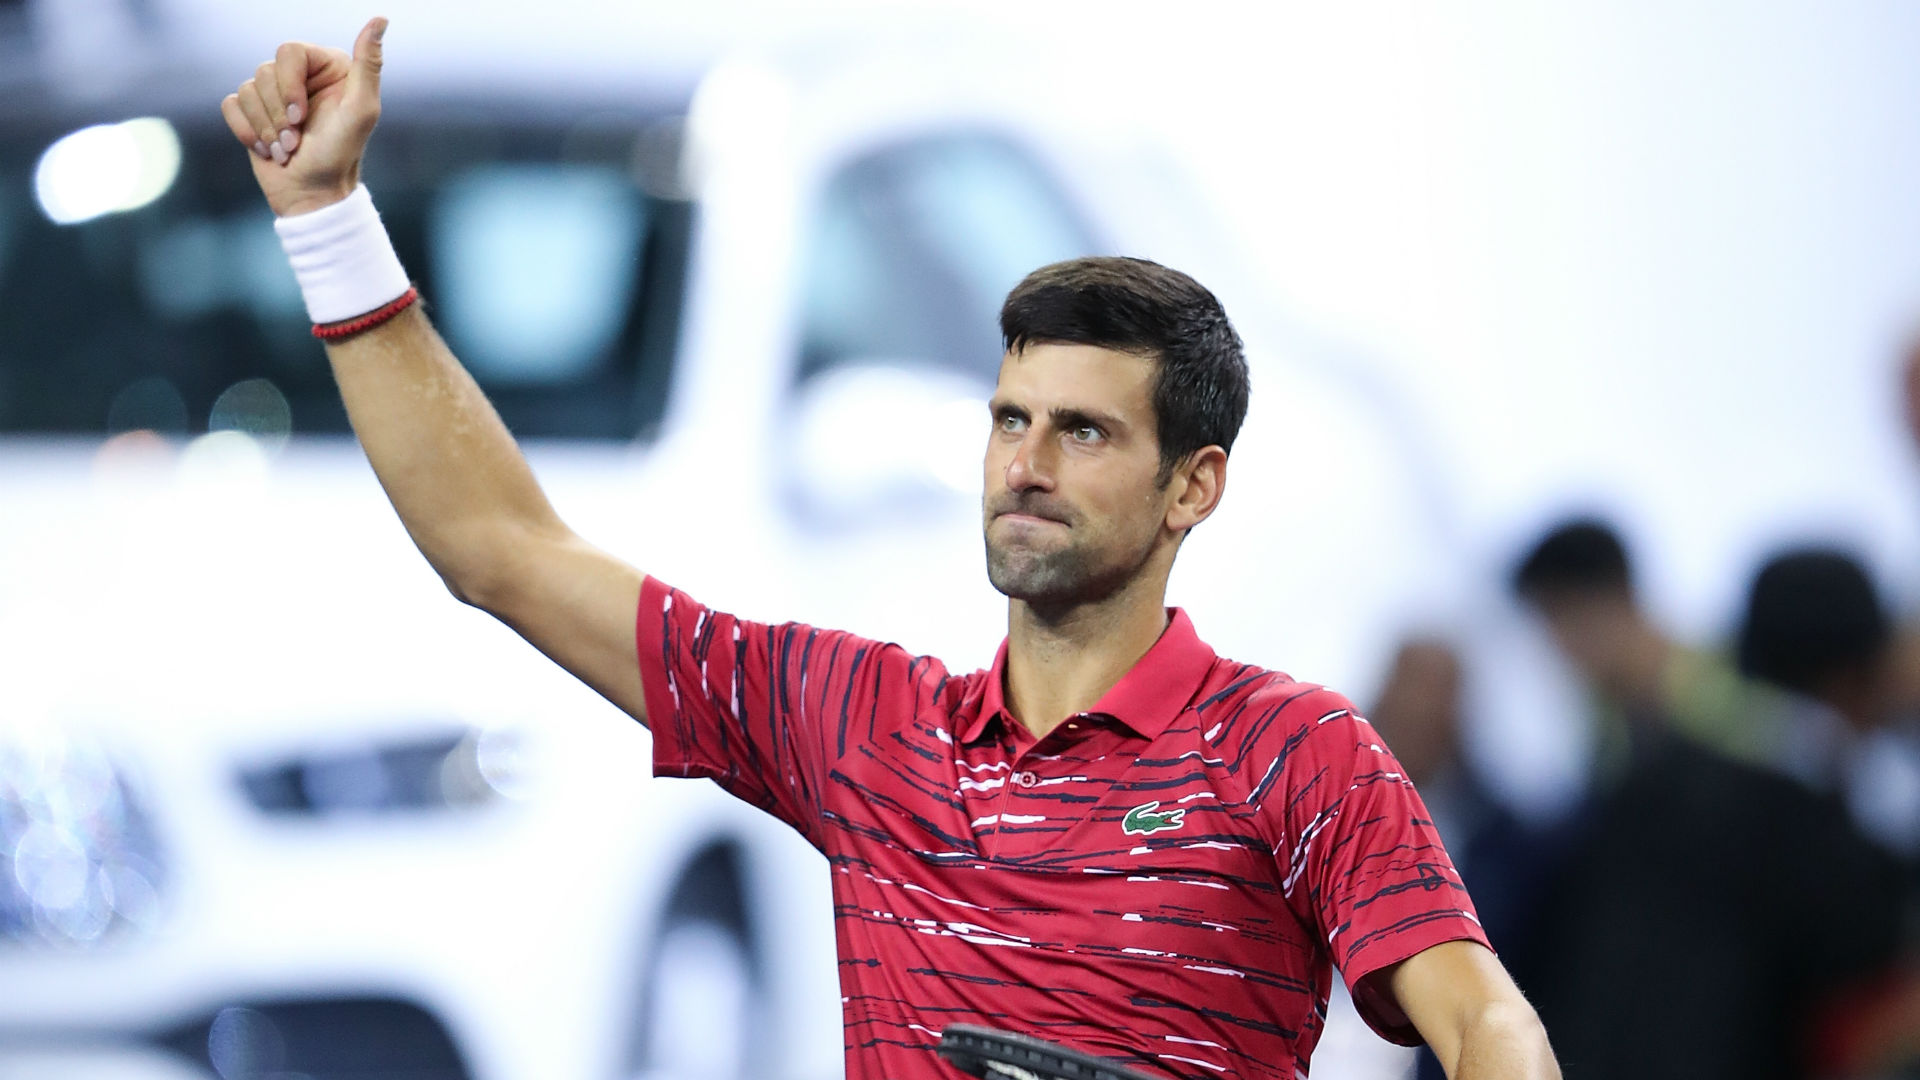 Dominant Djokovic dispatches Isner as Shanghai title defence rolls on